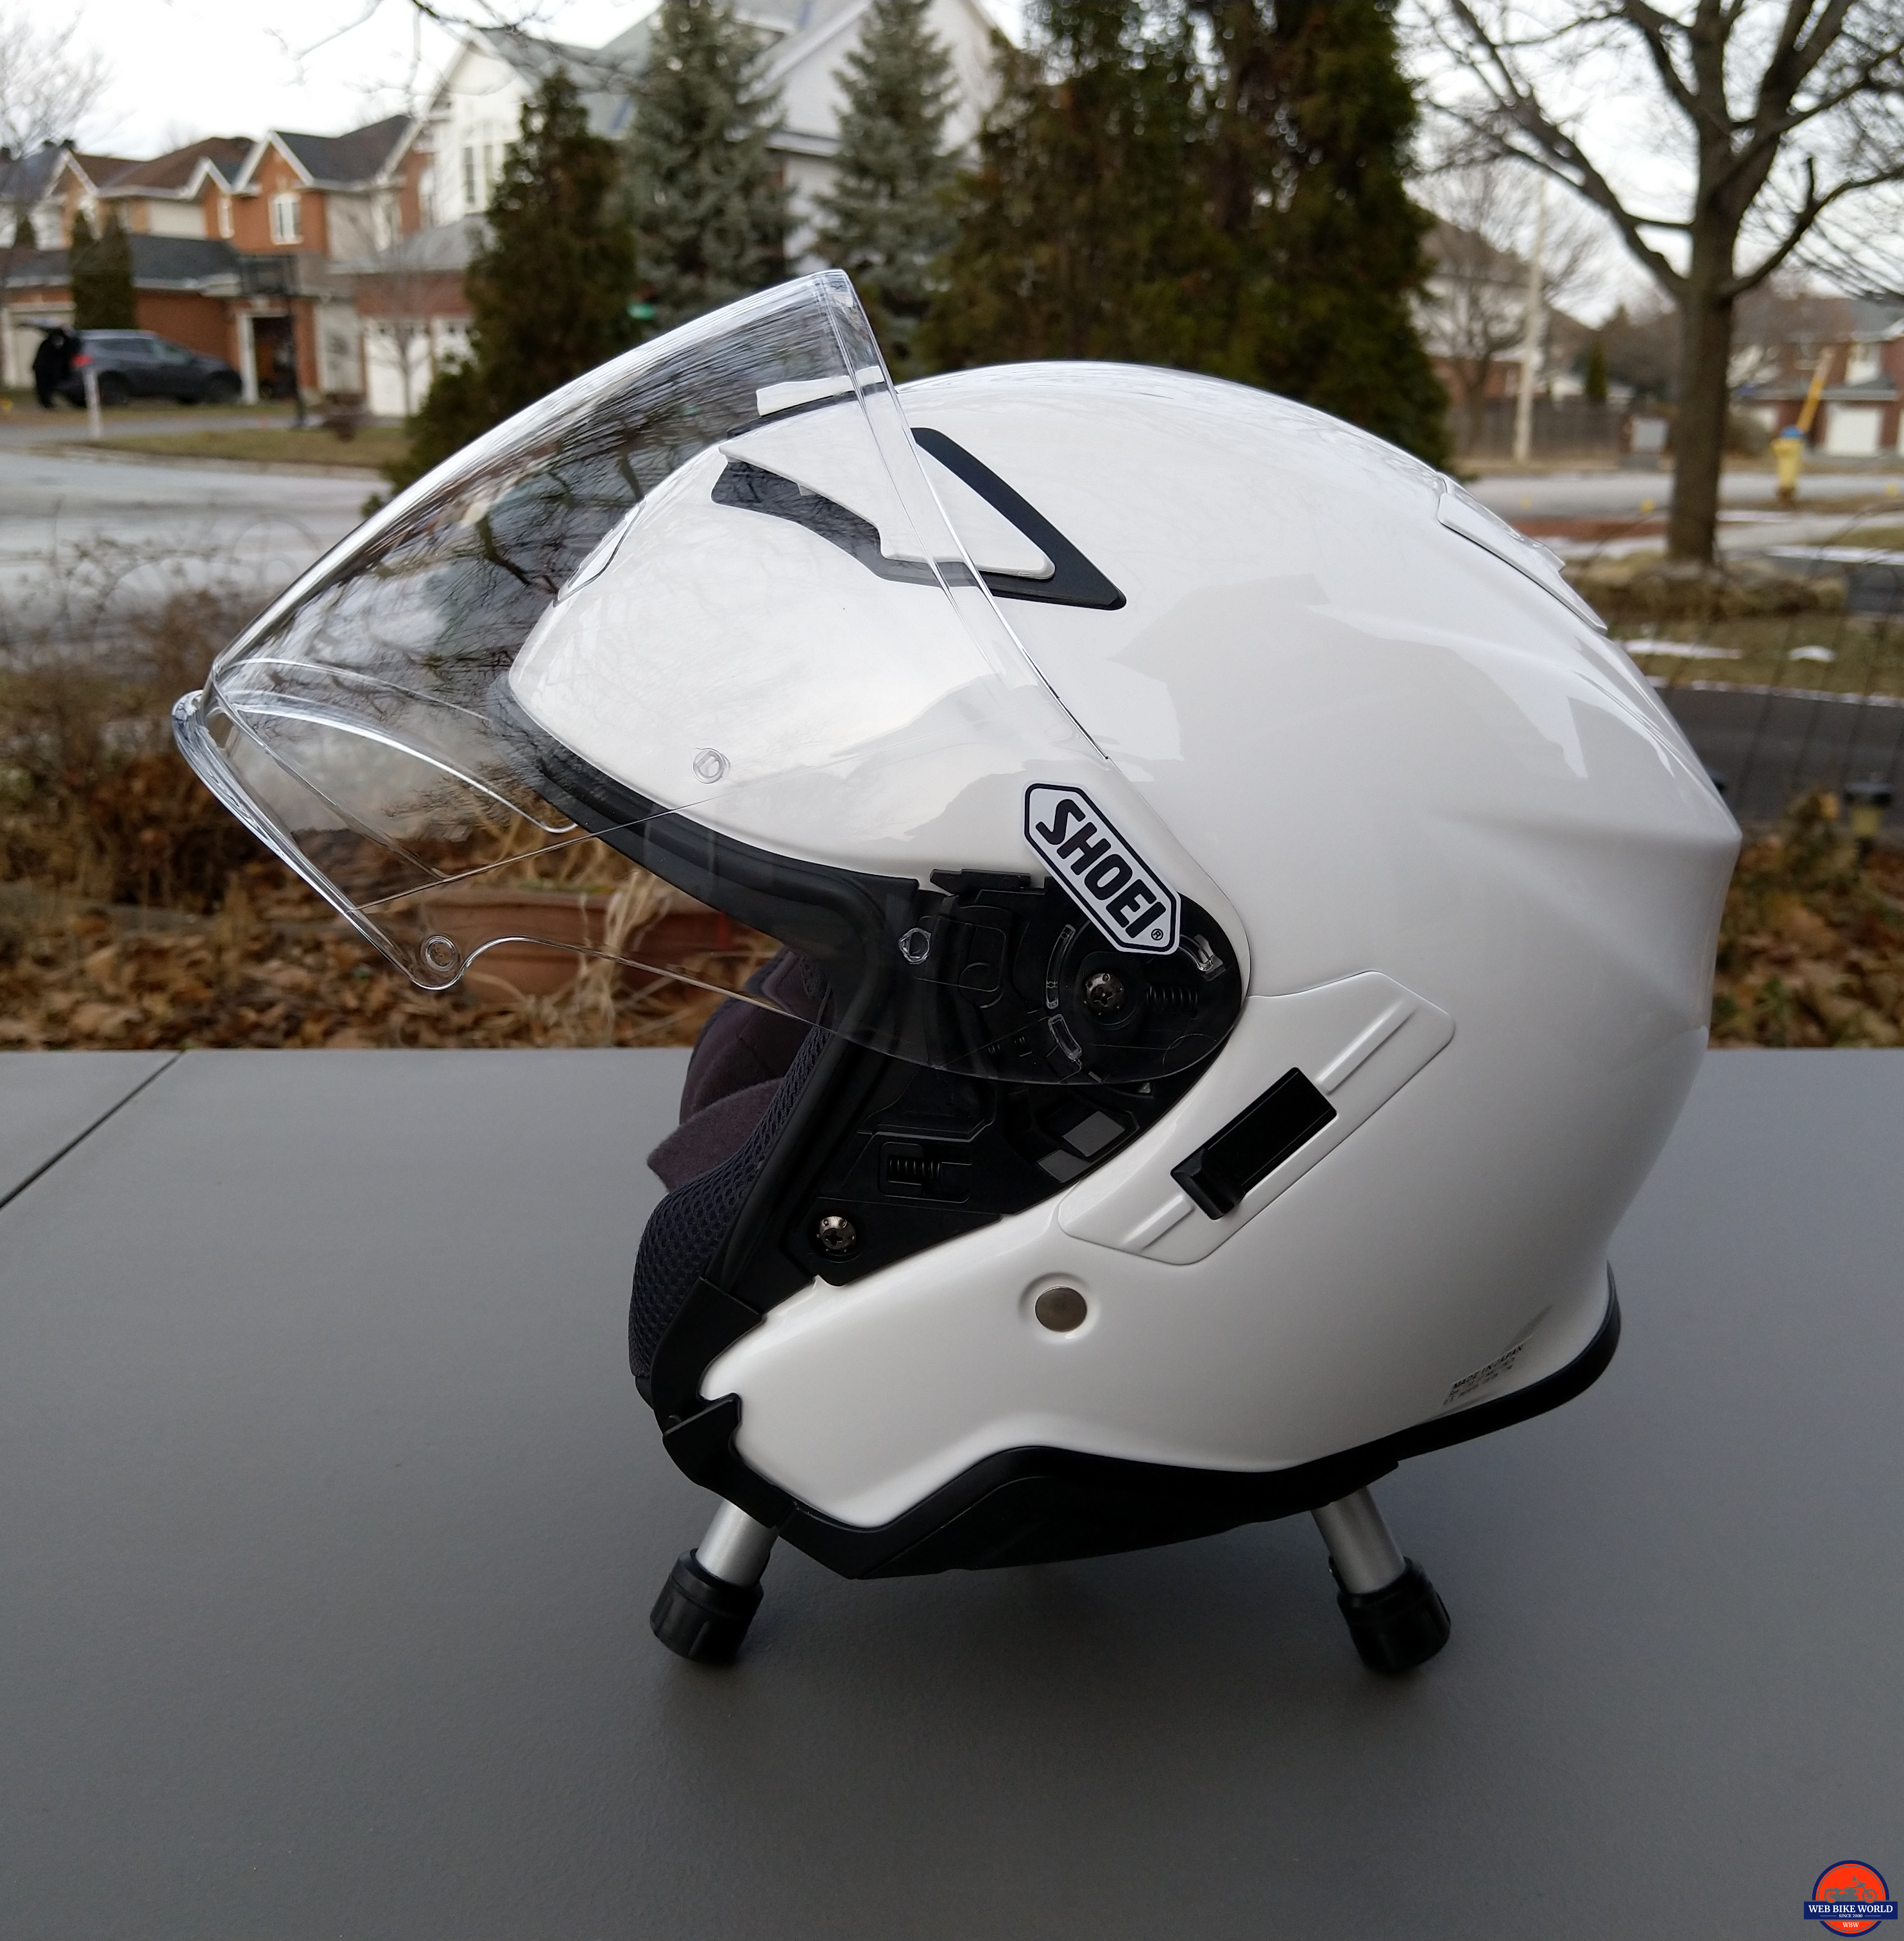 Shoei J-Cruise II, wide smooth functioning face shield, sun visor slider very effective as well